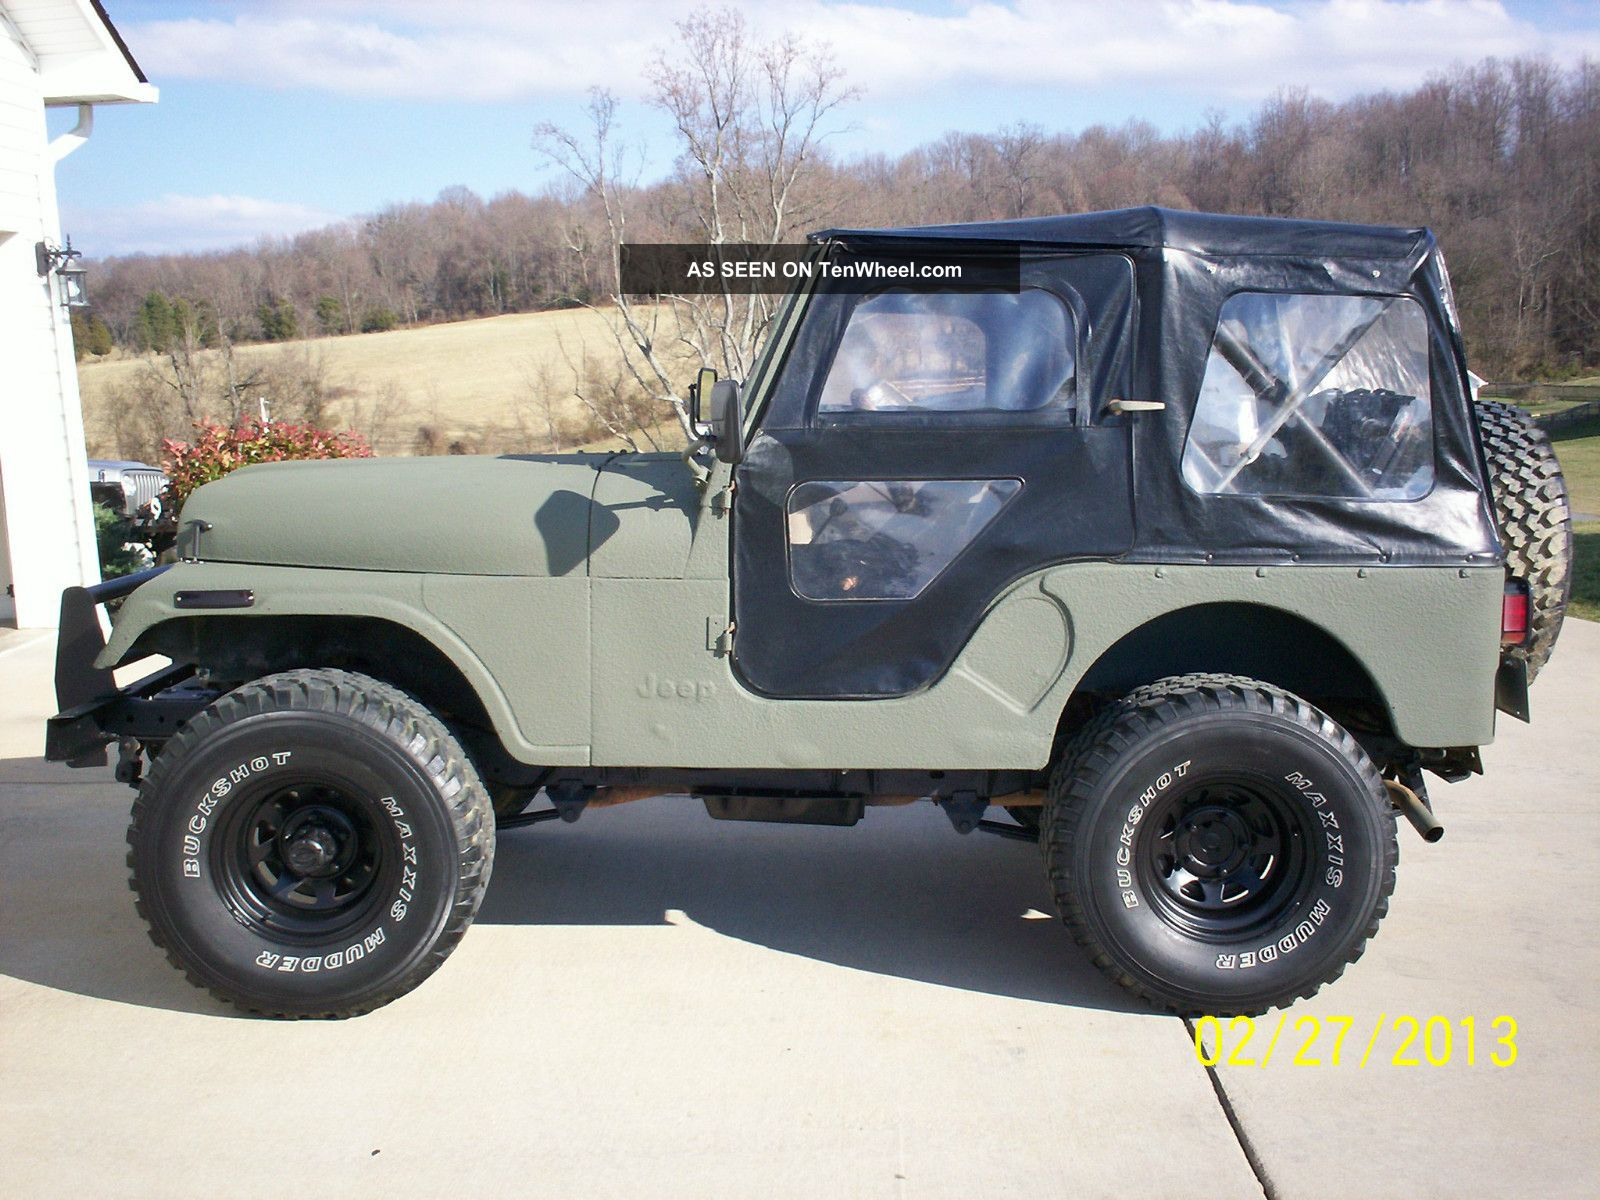 hight resolution of 1977 amc jeep cj5 304 v8 3 speed lifted 33 s bedlinered great daily driver